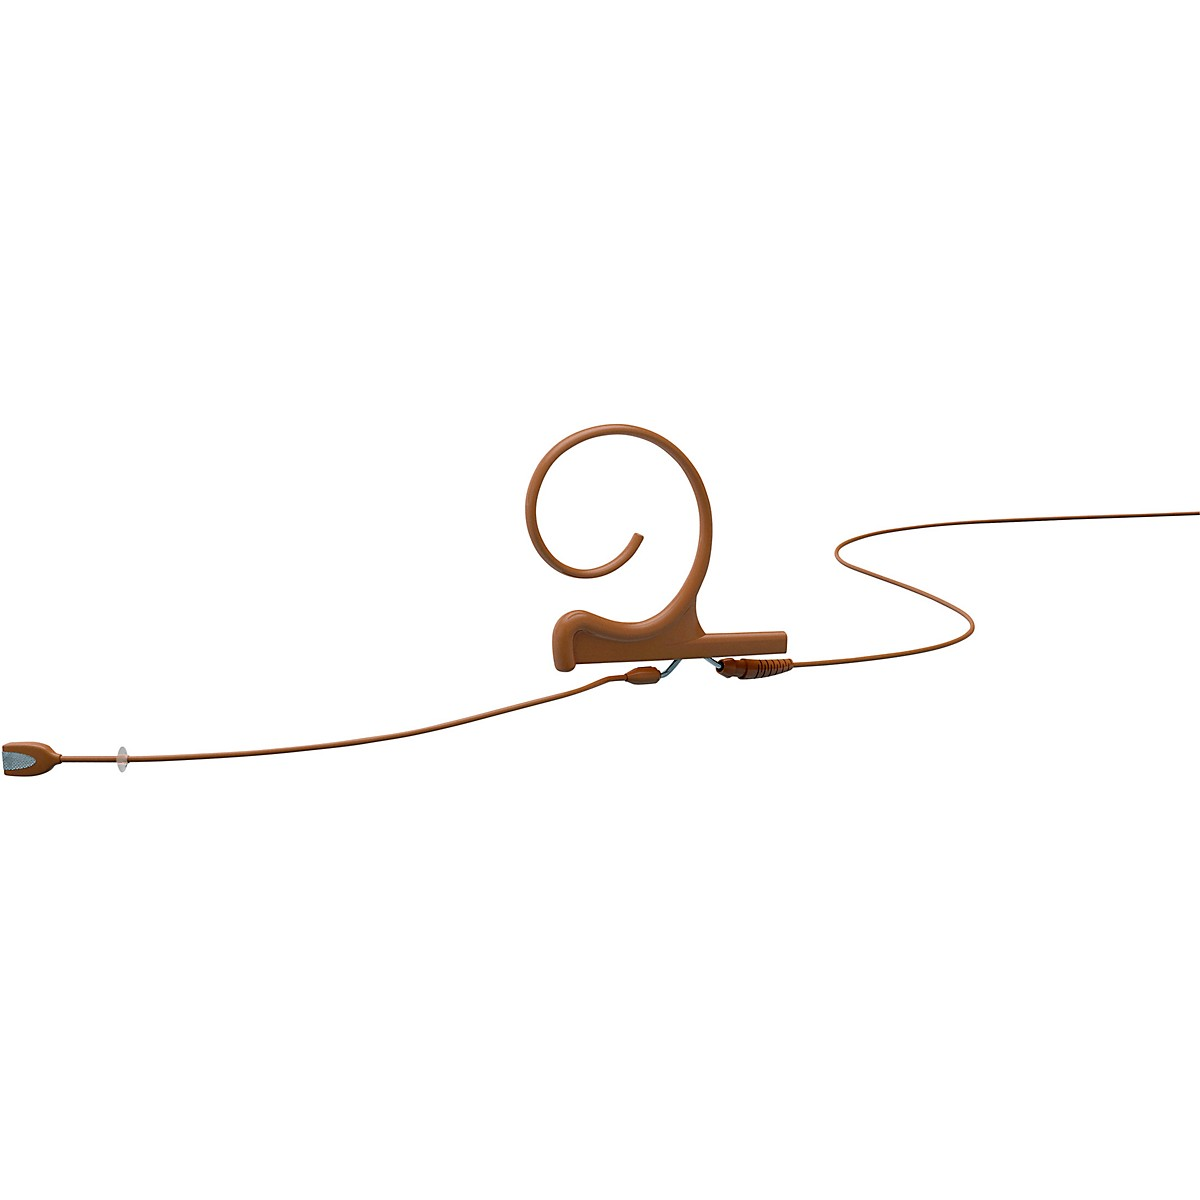 DPA Microphones d:fine FIO Slim Omnidirectional Headset Microphone, Single ear, 90mm boom, Microdot connector, Brown